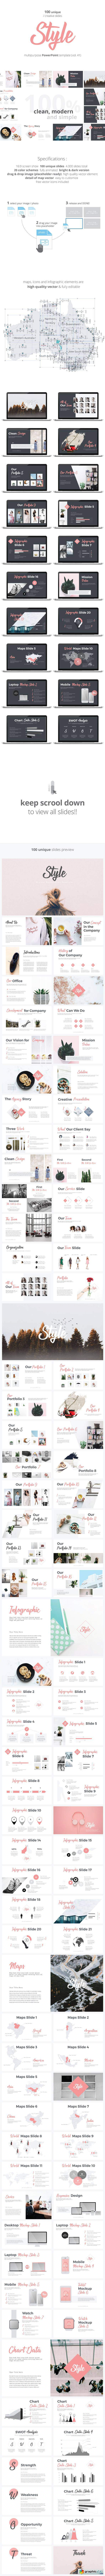 Style - Multipurpose PowerPoint Template (V 41)